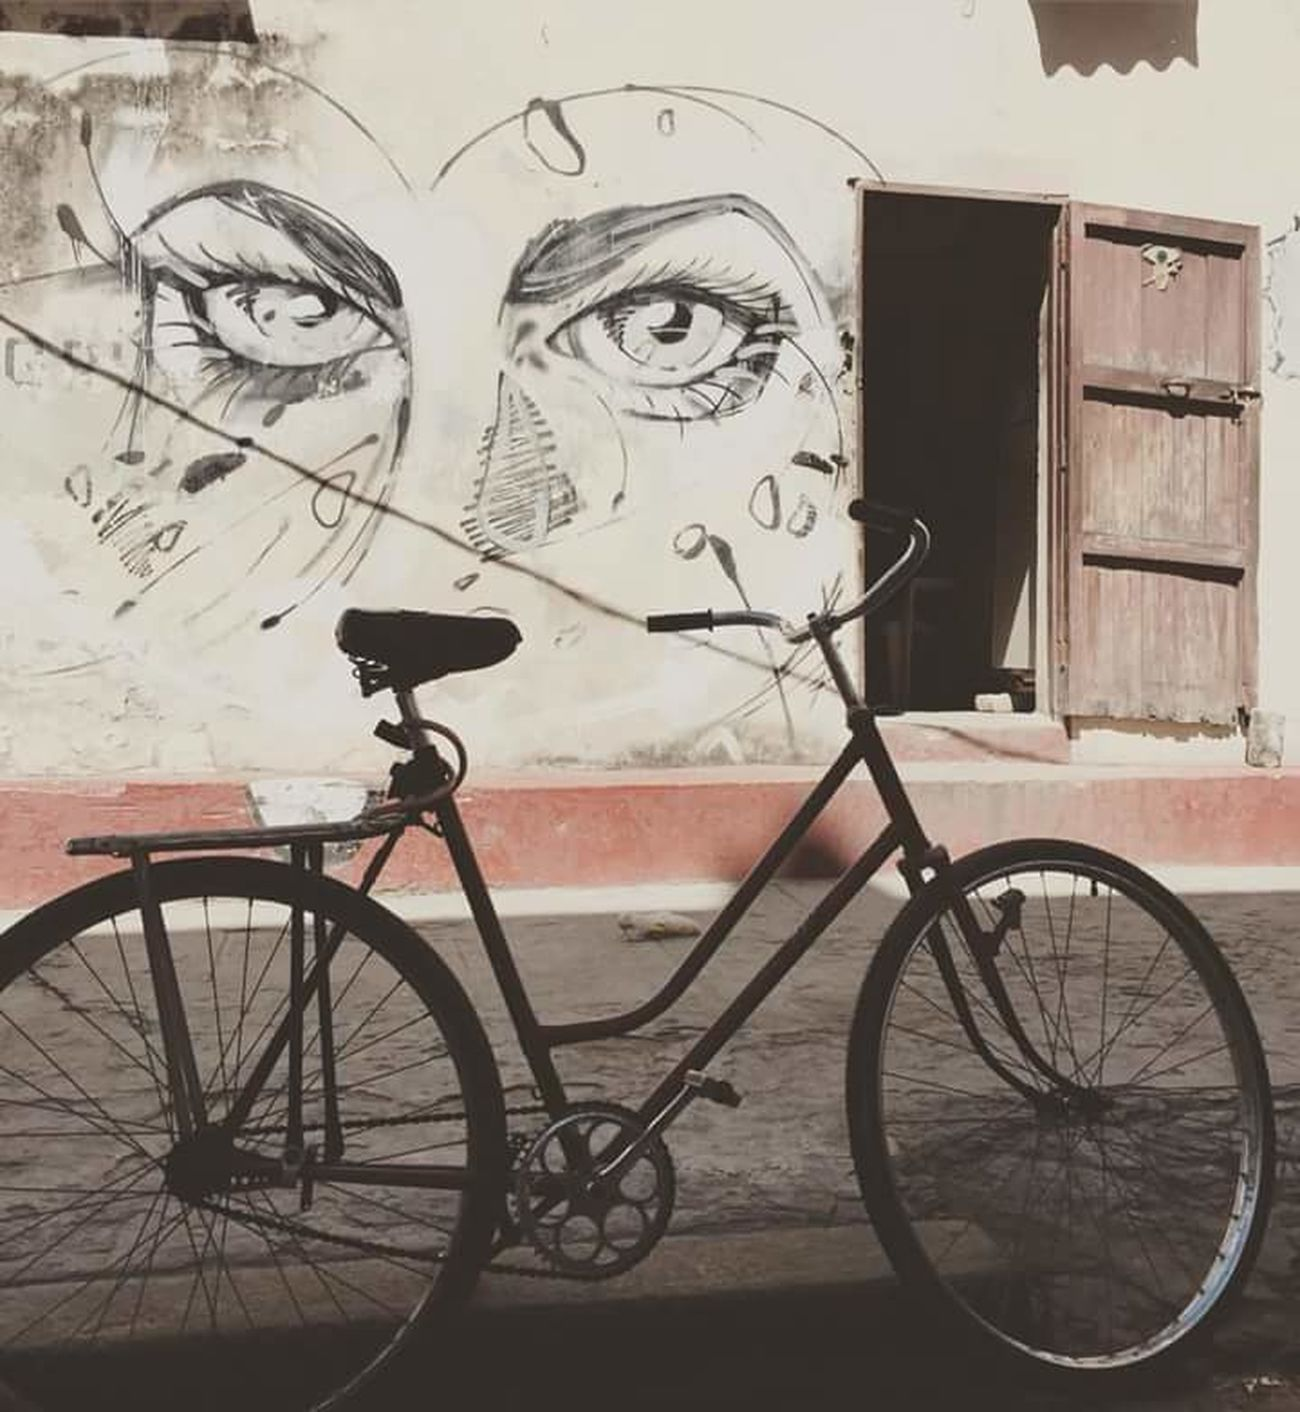 Cuba Bicycle Transportation Mode Of Transport No People Drawing - Art Product Outdoors Night